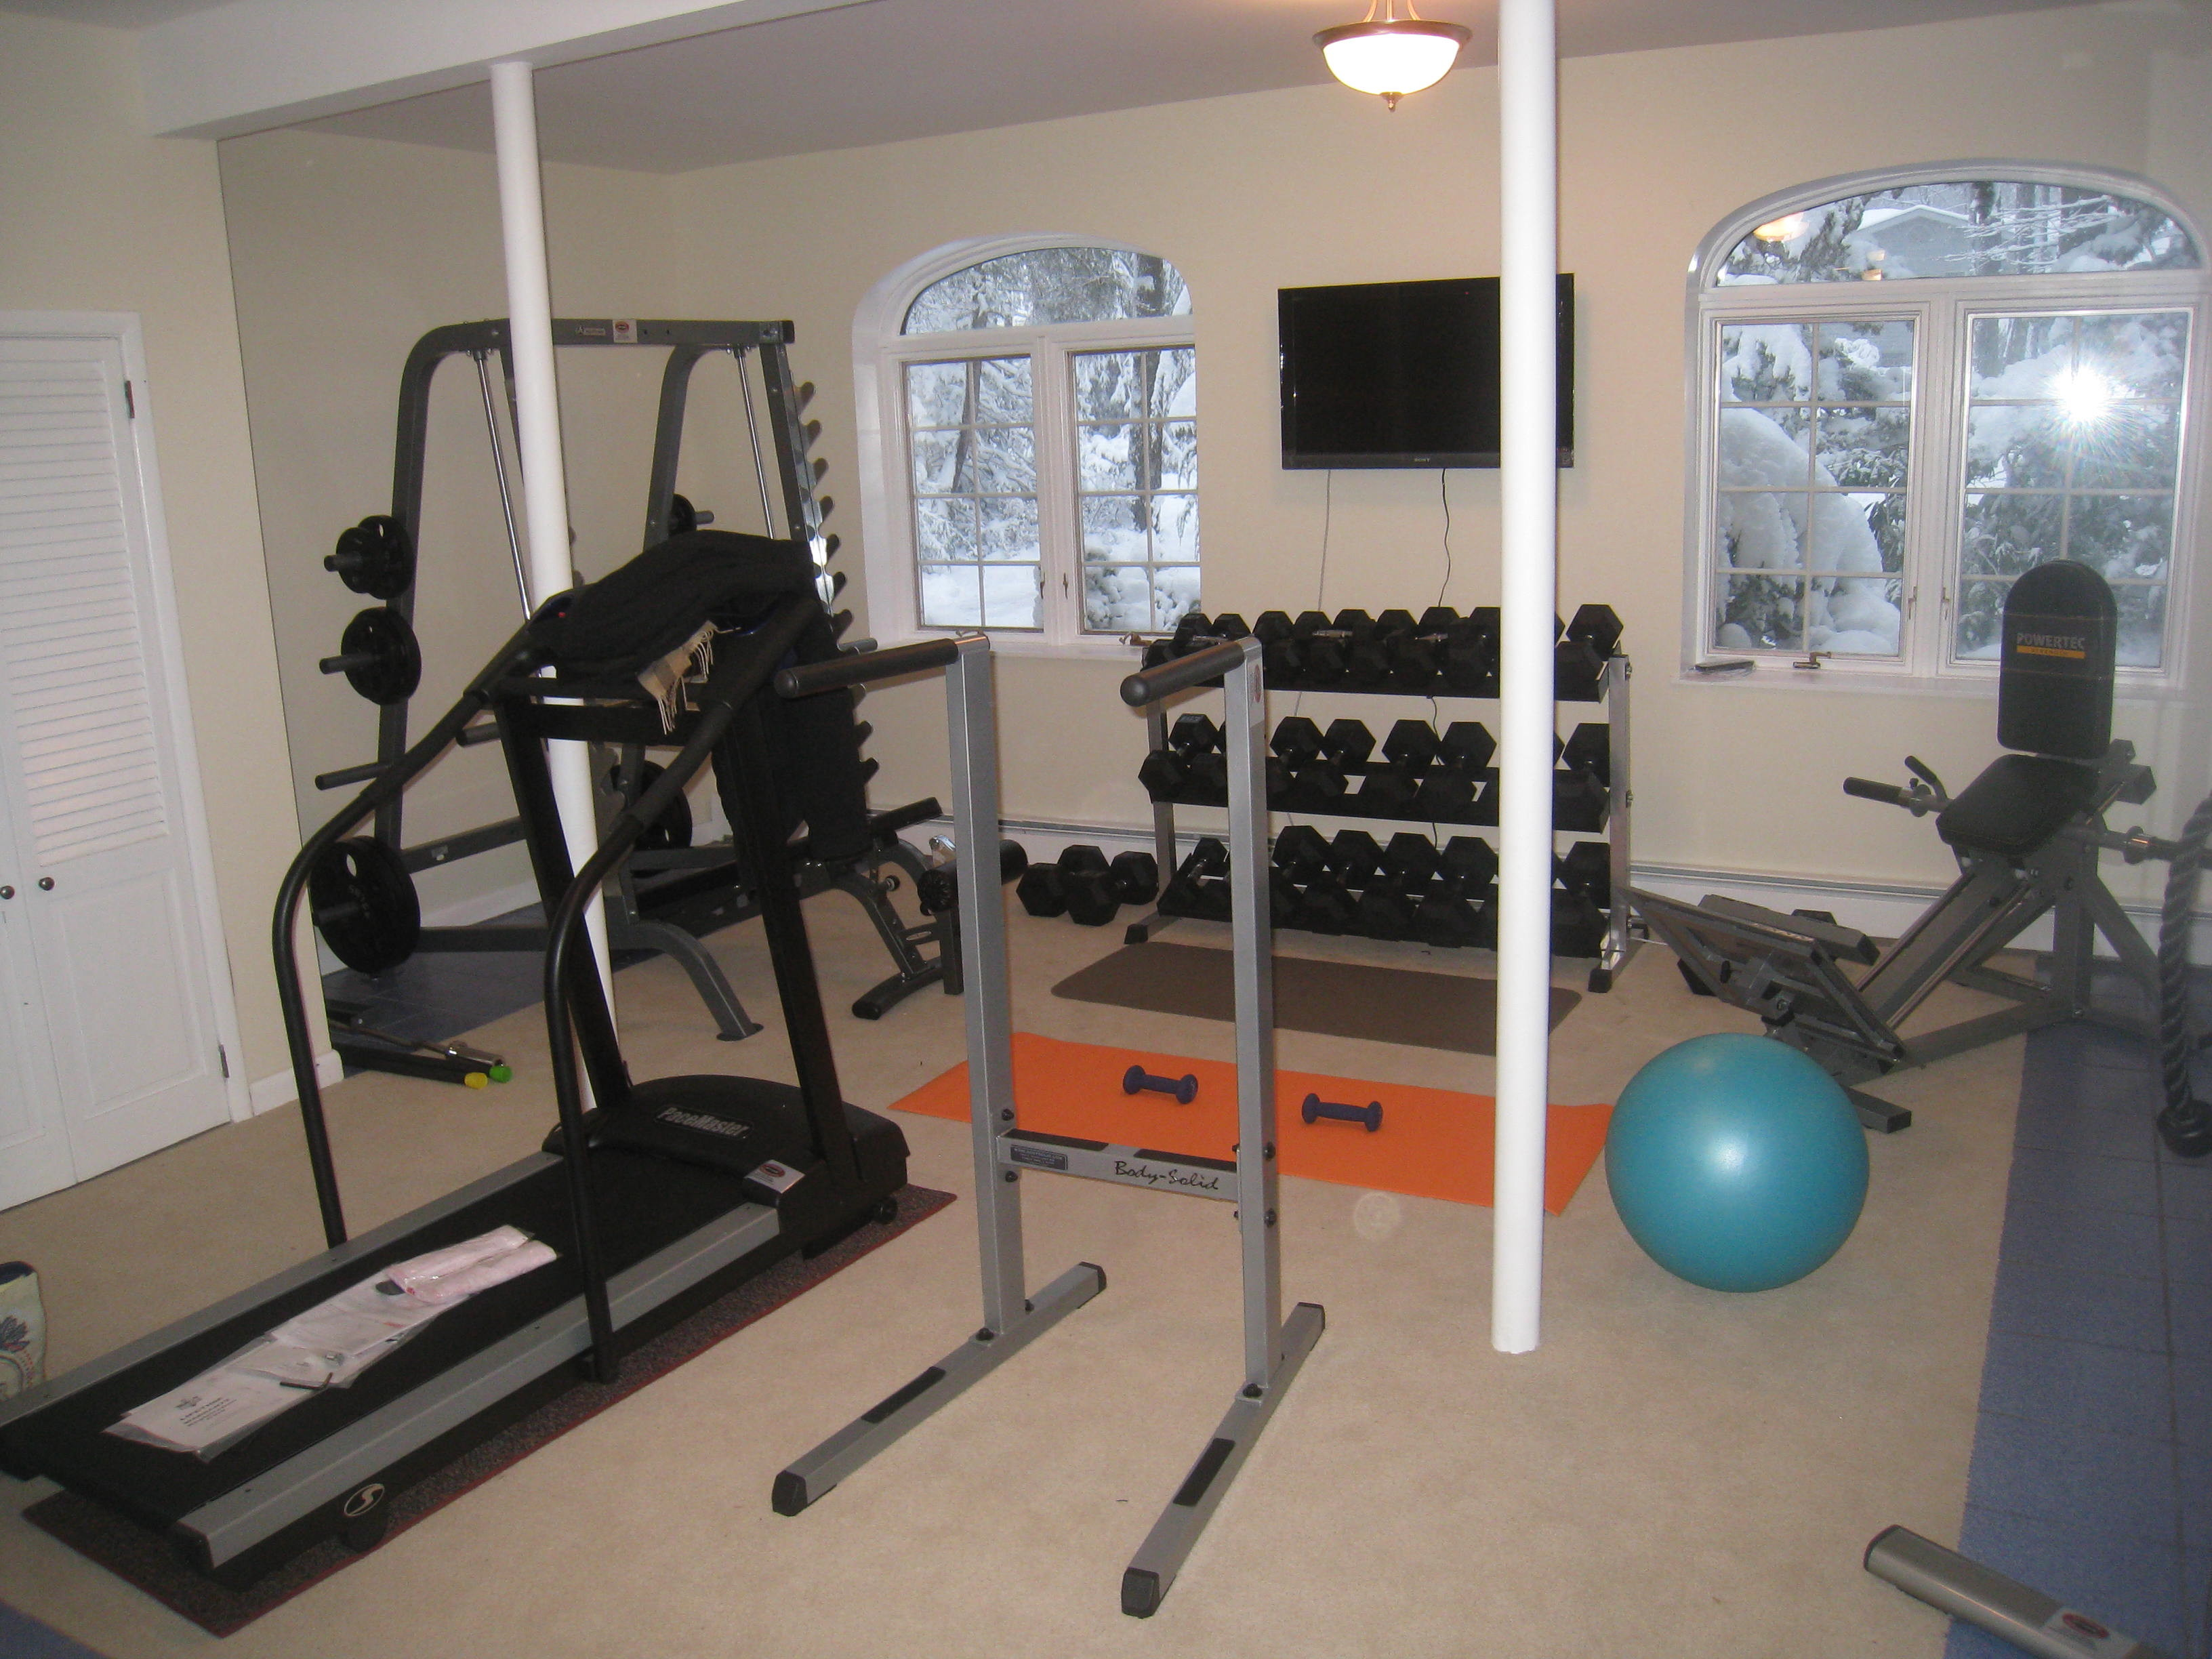 Home gym equipment in walnut creek ca exercise equipment warehouse